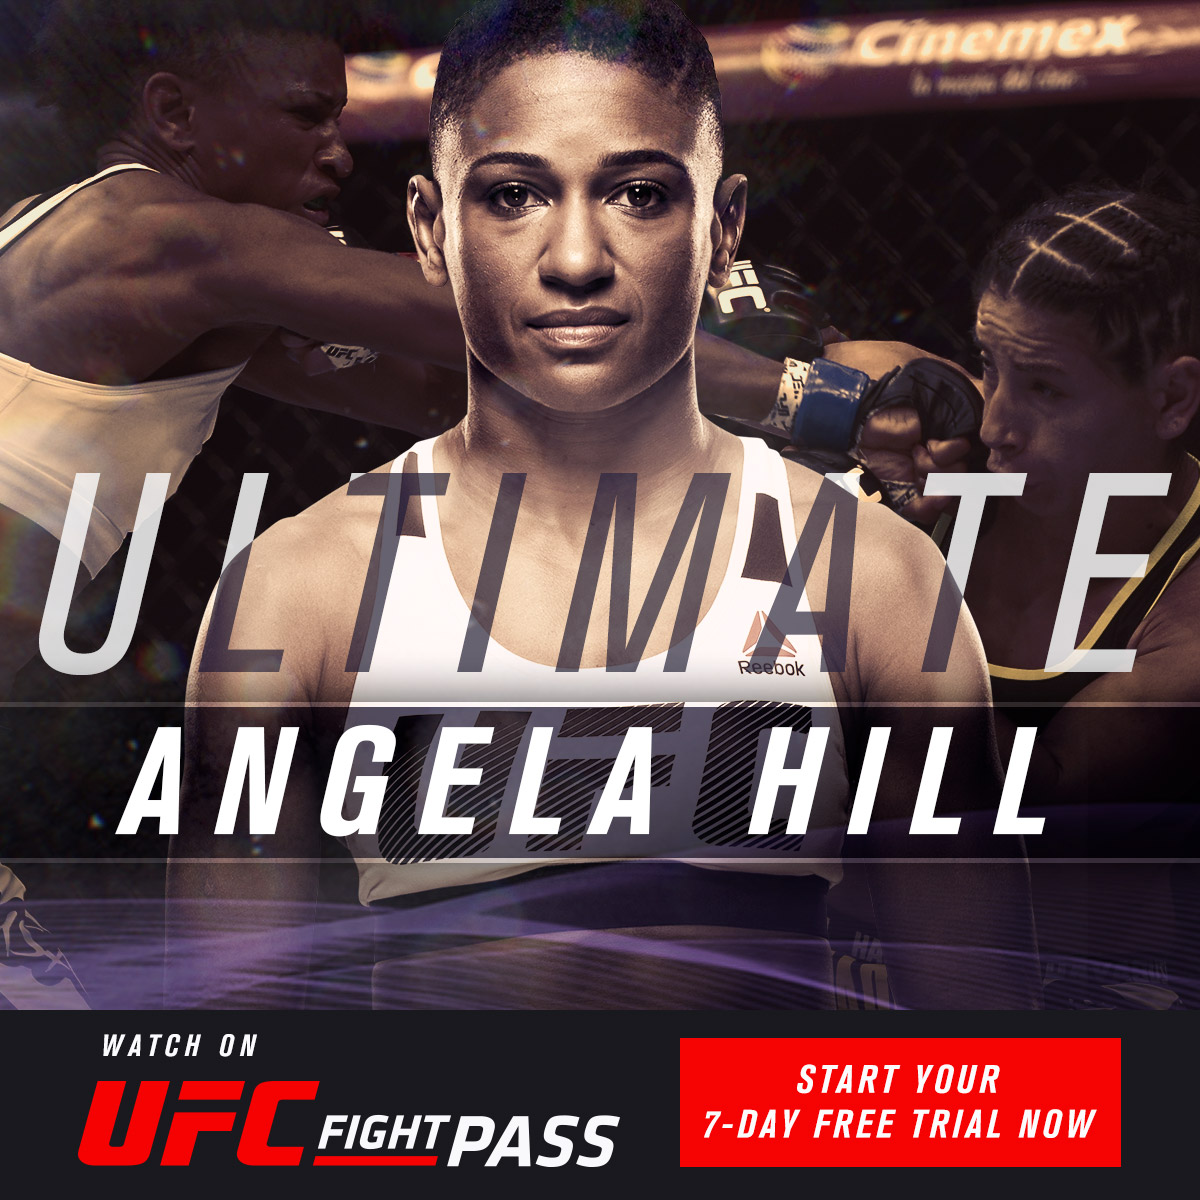 Watch the Ultimate Angela Hill collection now on UFC FIGHT PASS, including Hill's win over Livia Renata Souza for the Invicta FC strawweight title, which is free this week on FIGHT PASS.